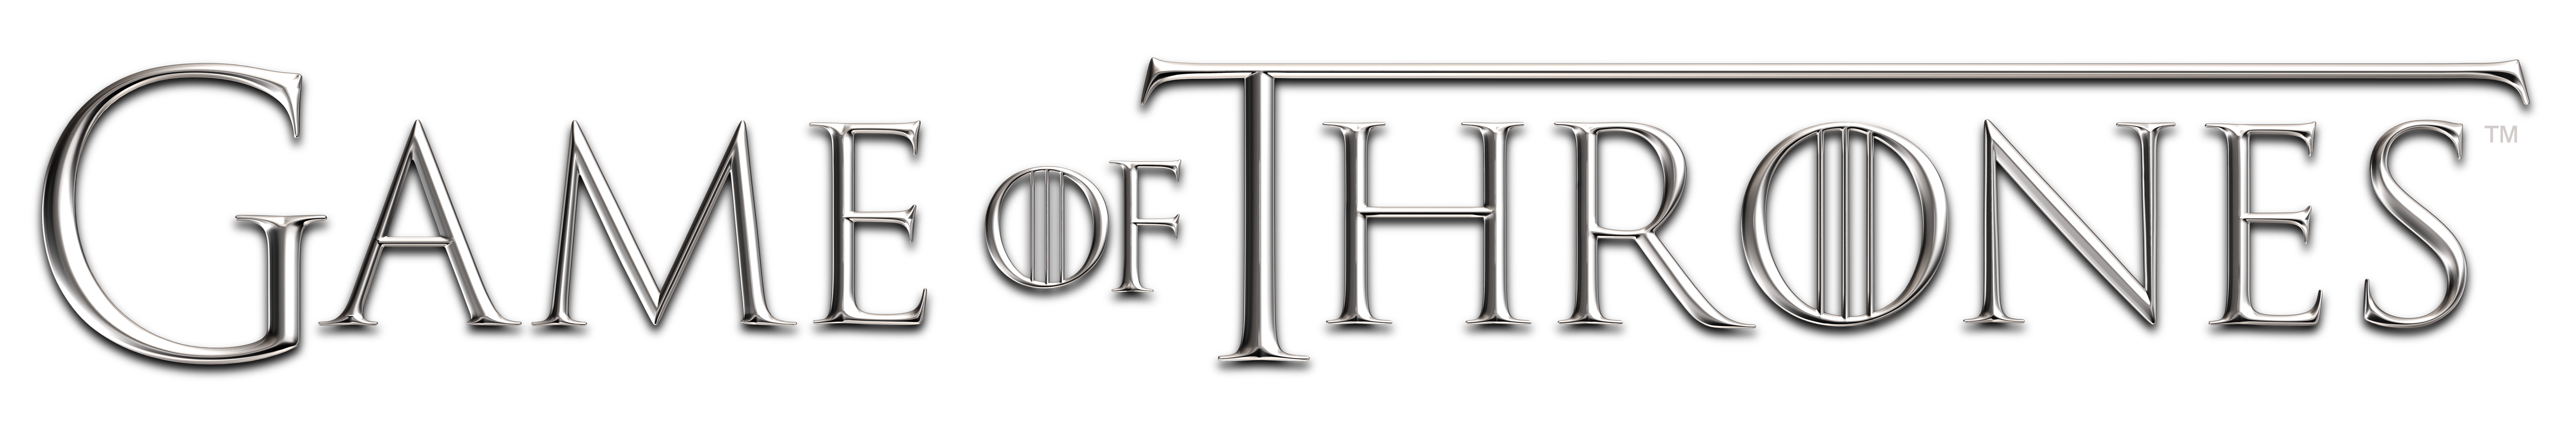 Game Of Thrones PNG Image